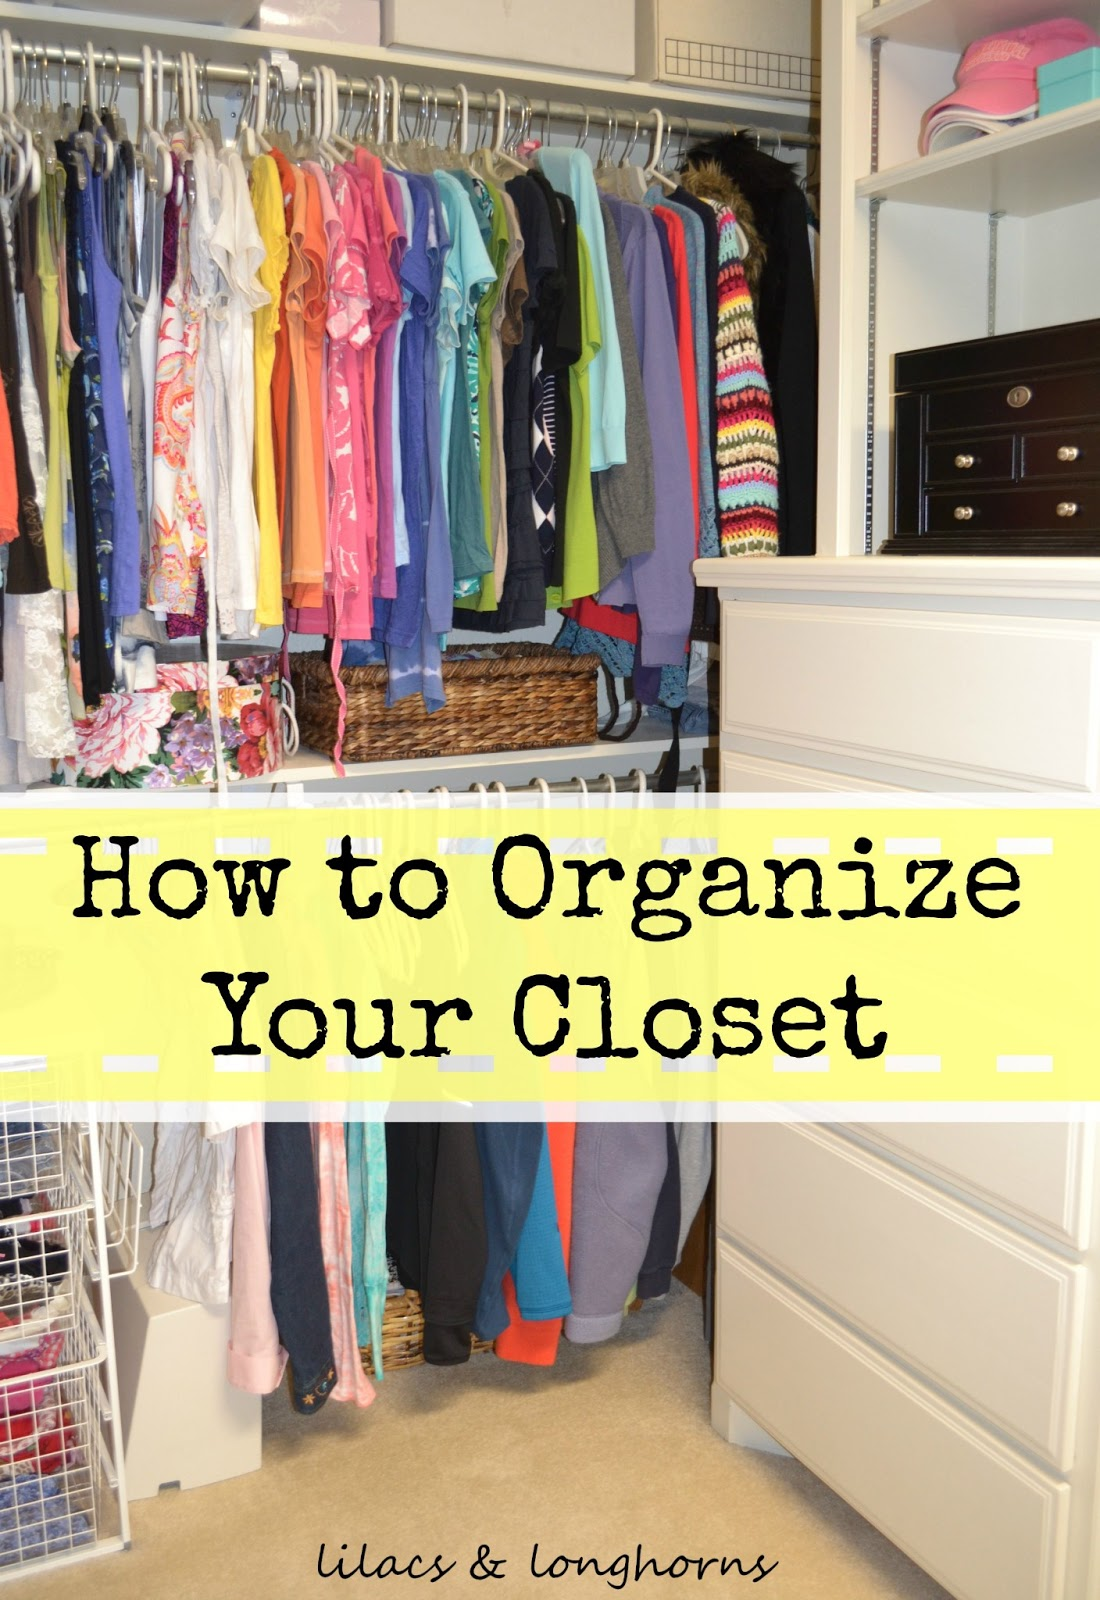 Organize A 6 Month Capsule Wardrobe For Fall And Winter: Organizing My Master Closet